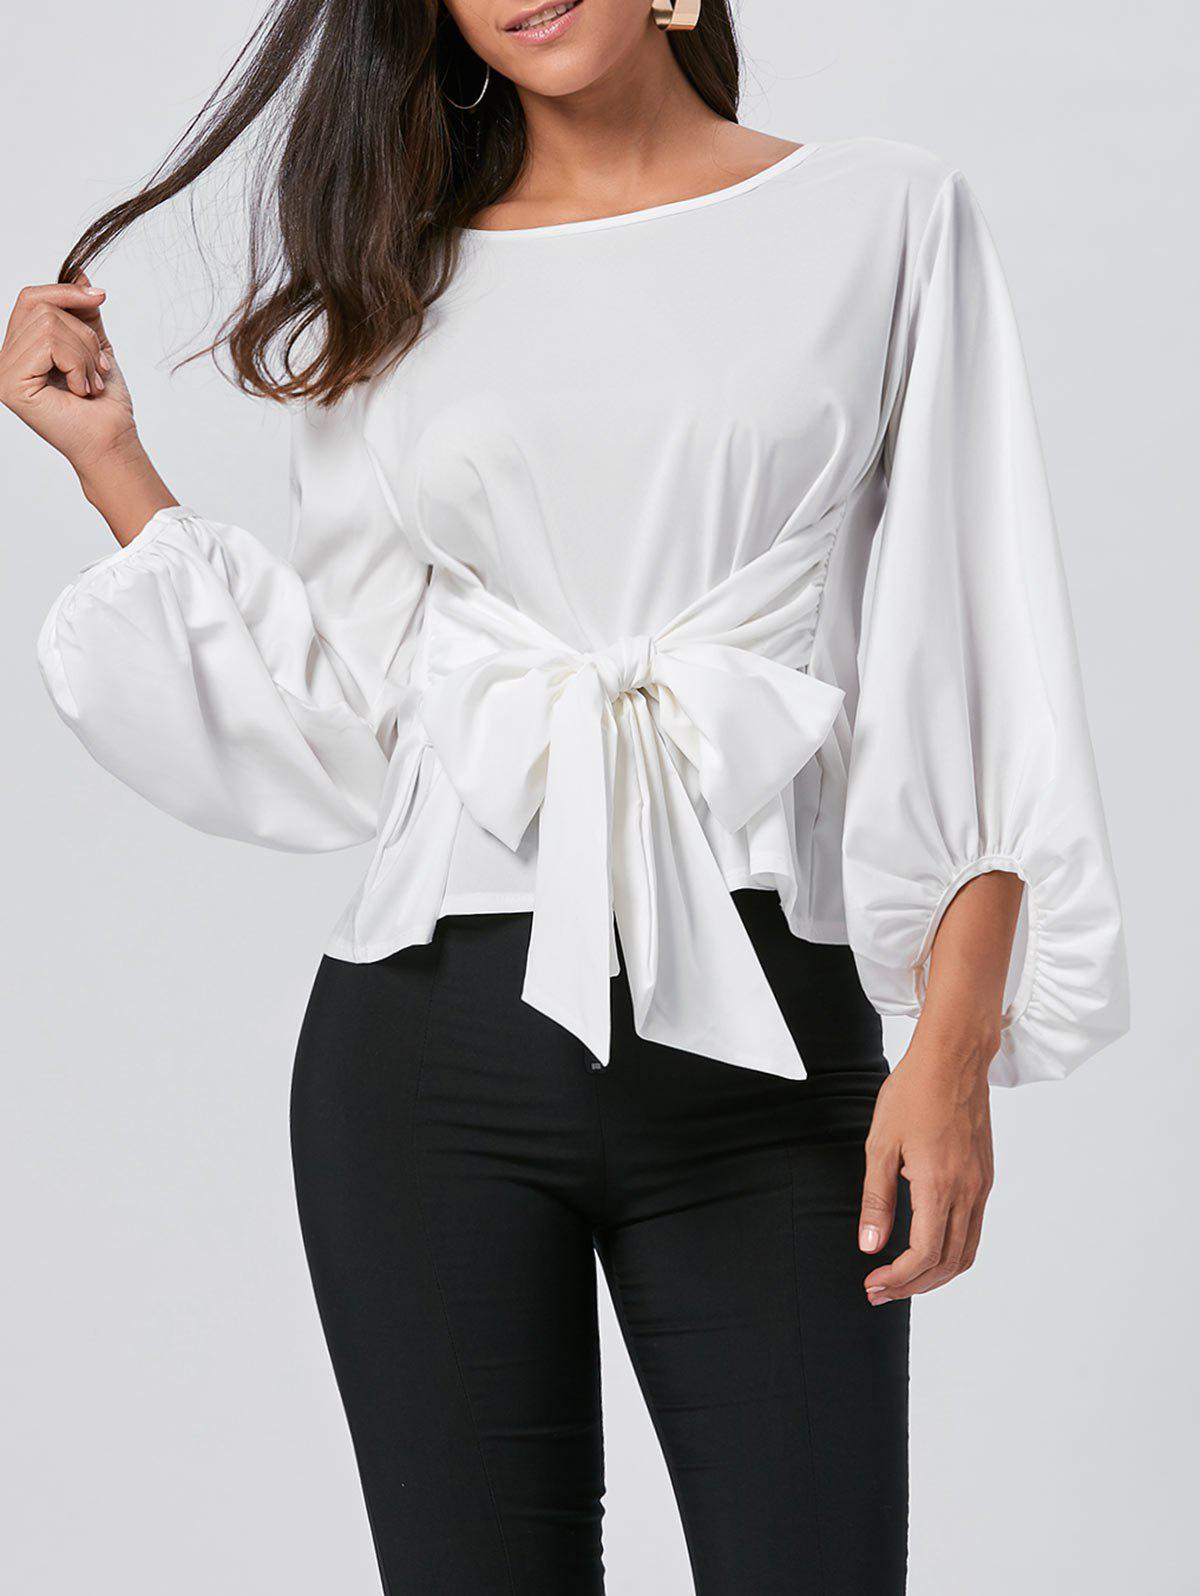 Plus Size Short Sleeve Blouses